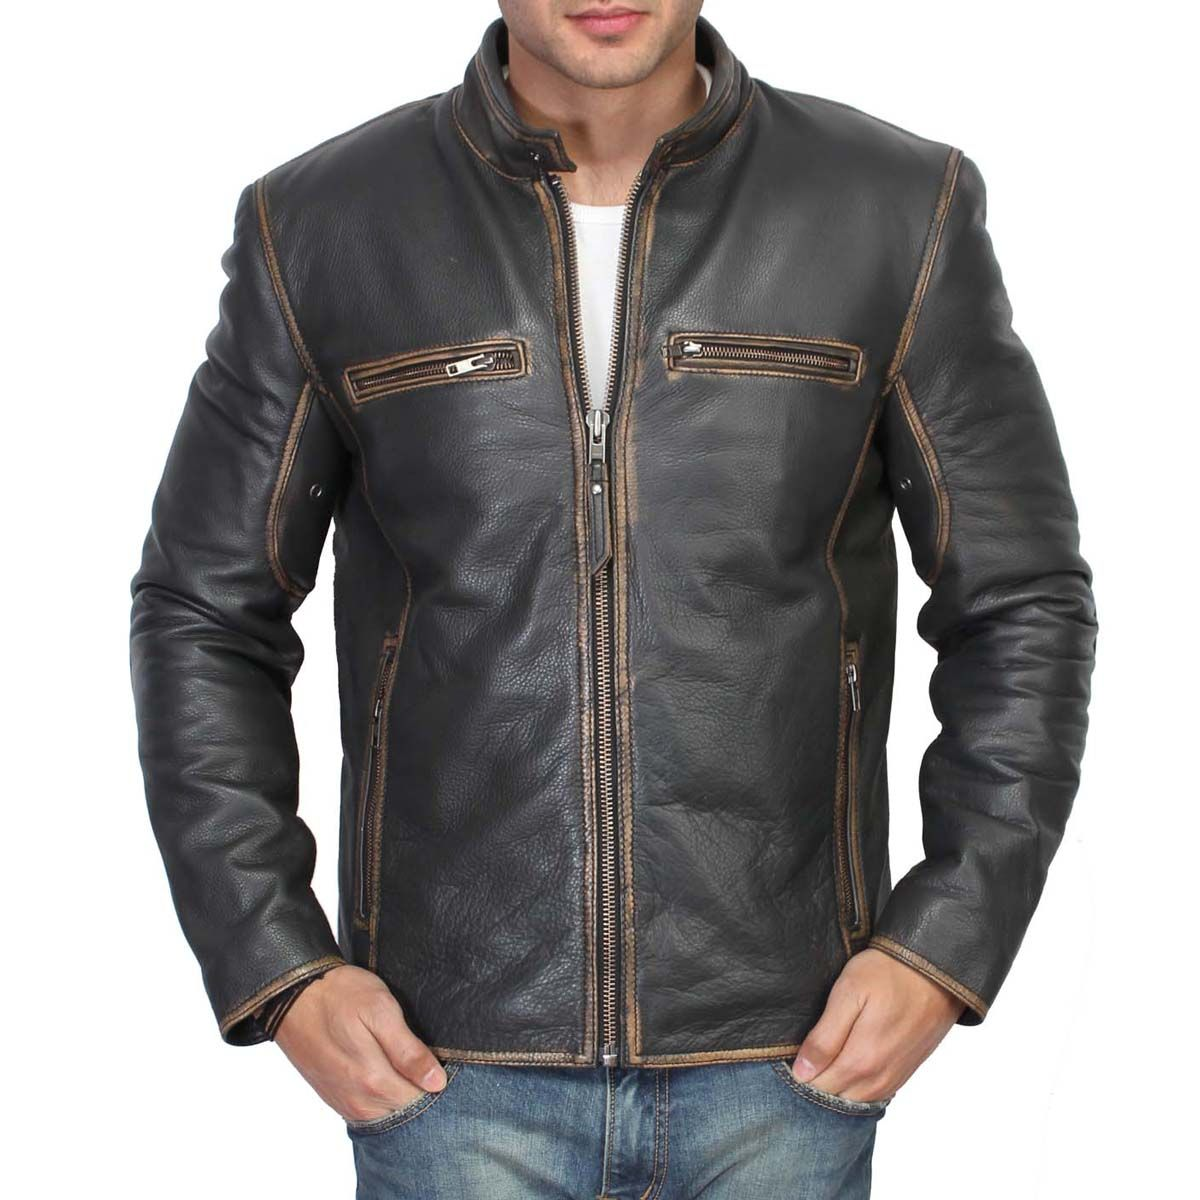 Buy online BLACK MENS BARESKIN LEATHER JACKET @ voganow.com for